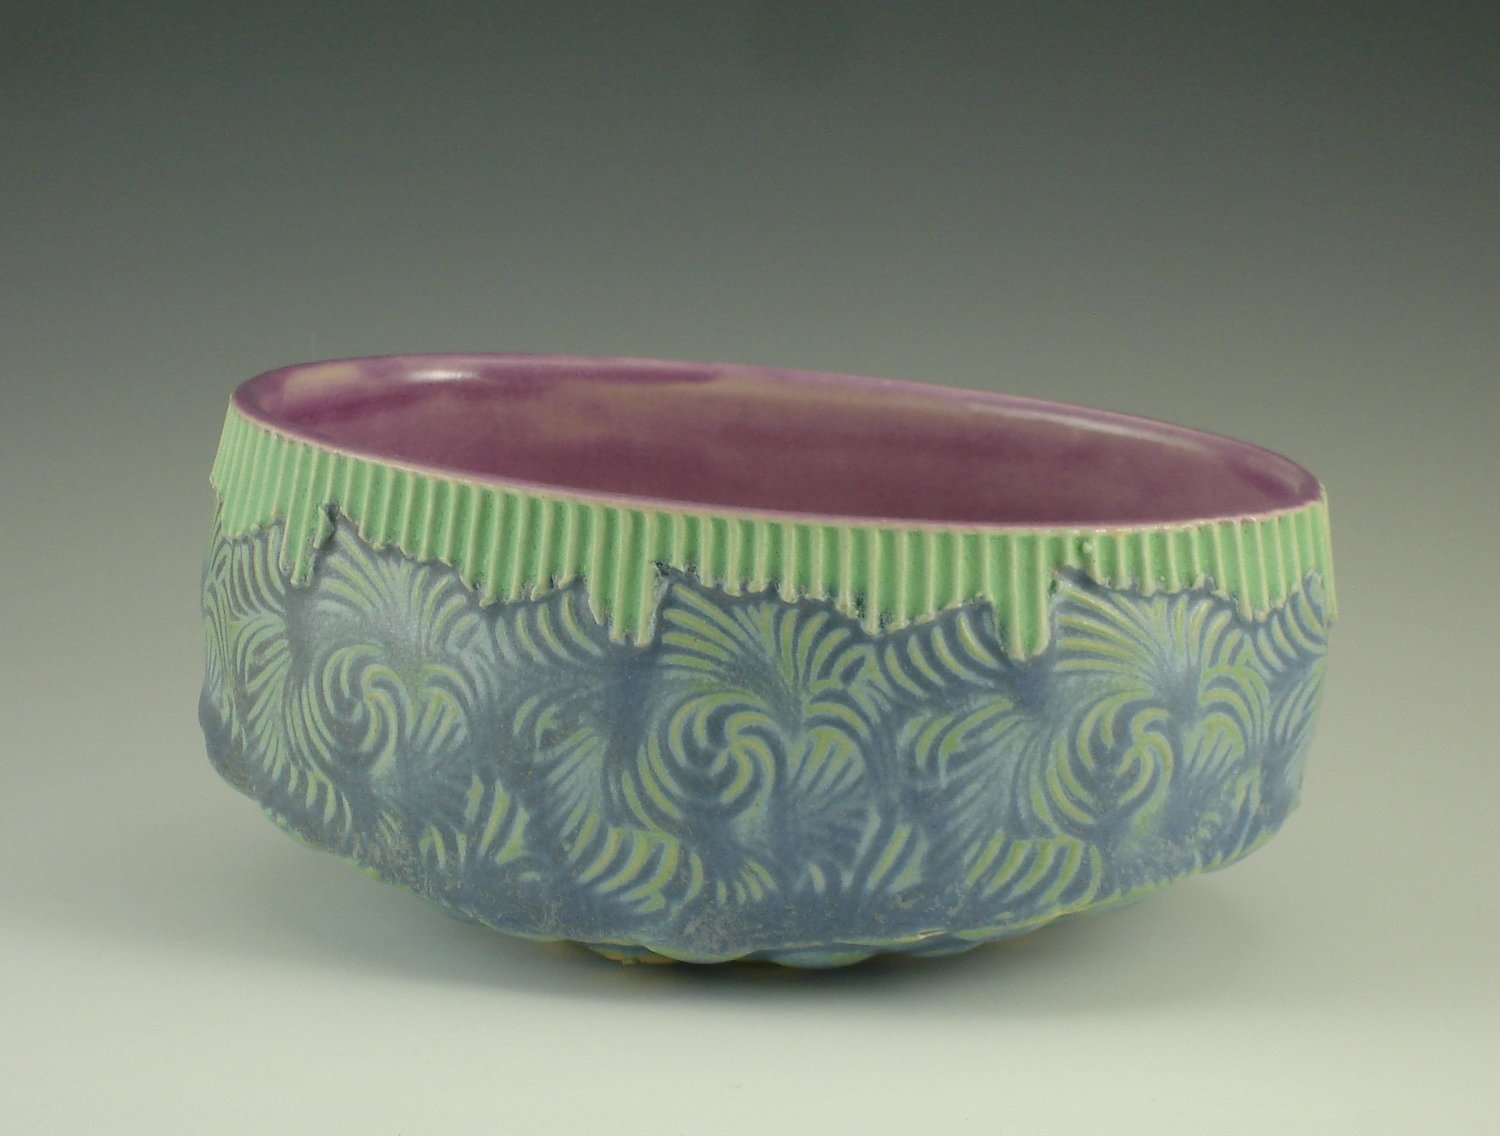 Small Oval Bowl in gum, green & mermaid